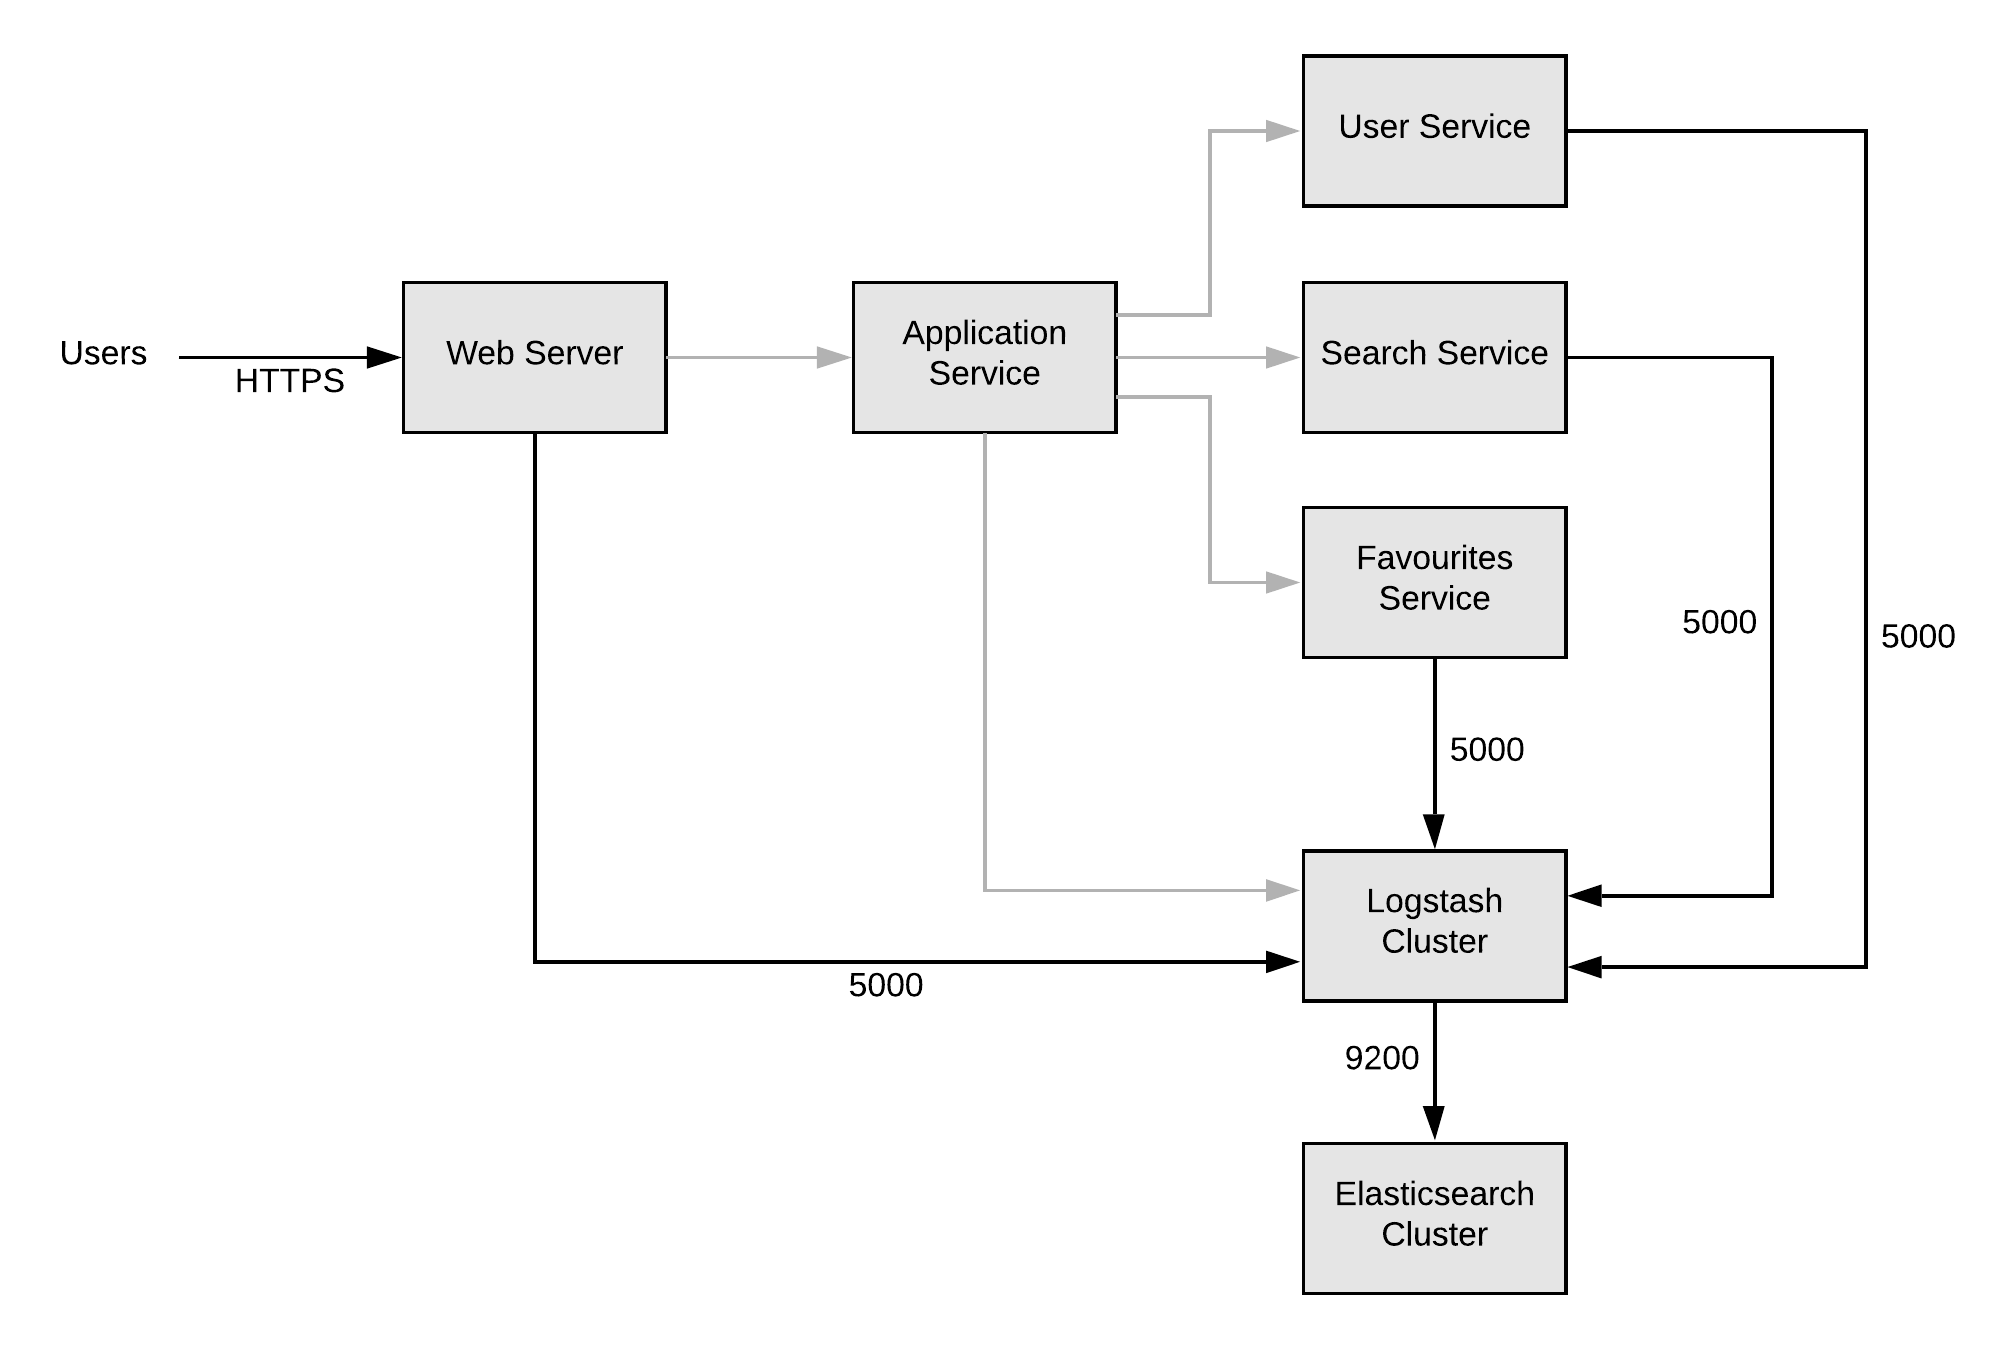 diagram showing web-server, application-service, user-service, search-service, favourites-service, logstash-cluster, elastic-search showing flow of logs to logstash cluster